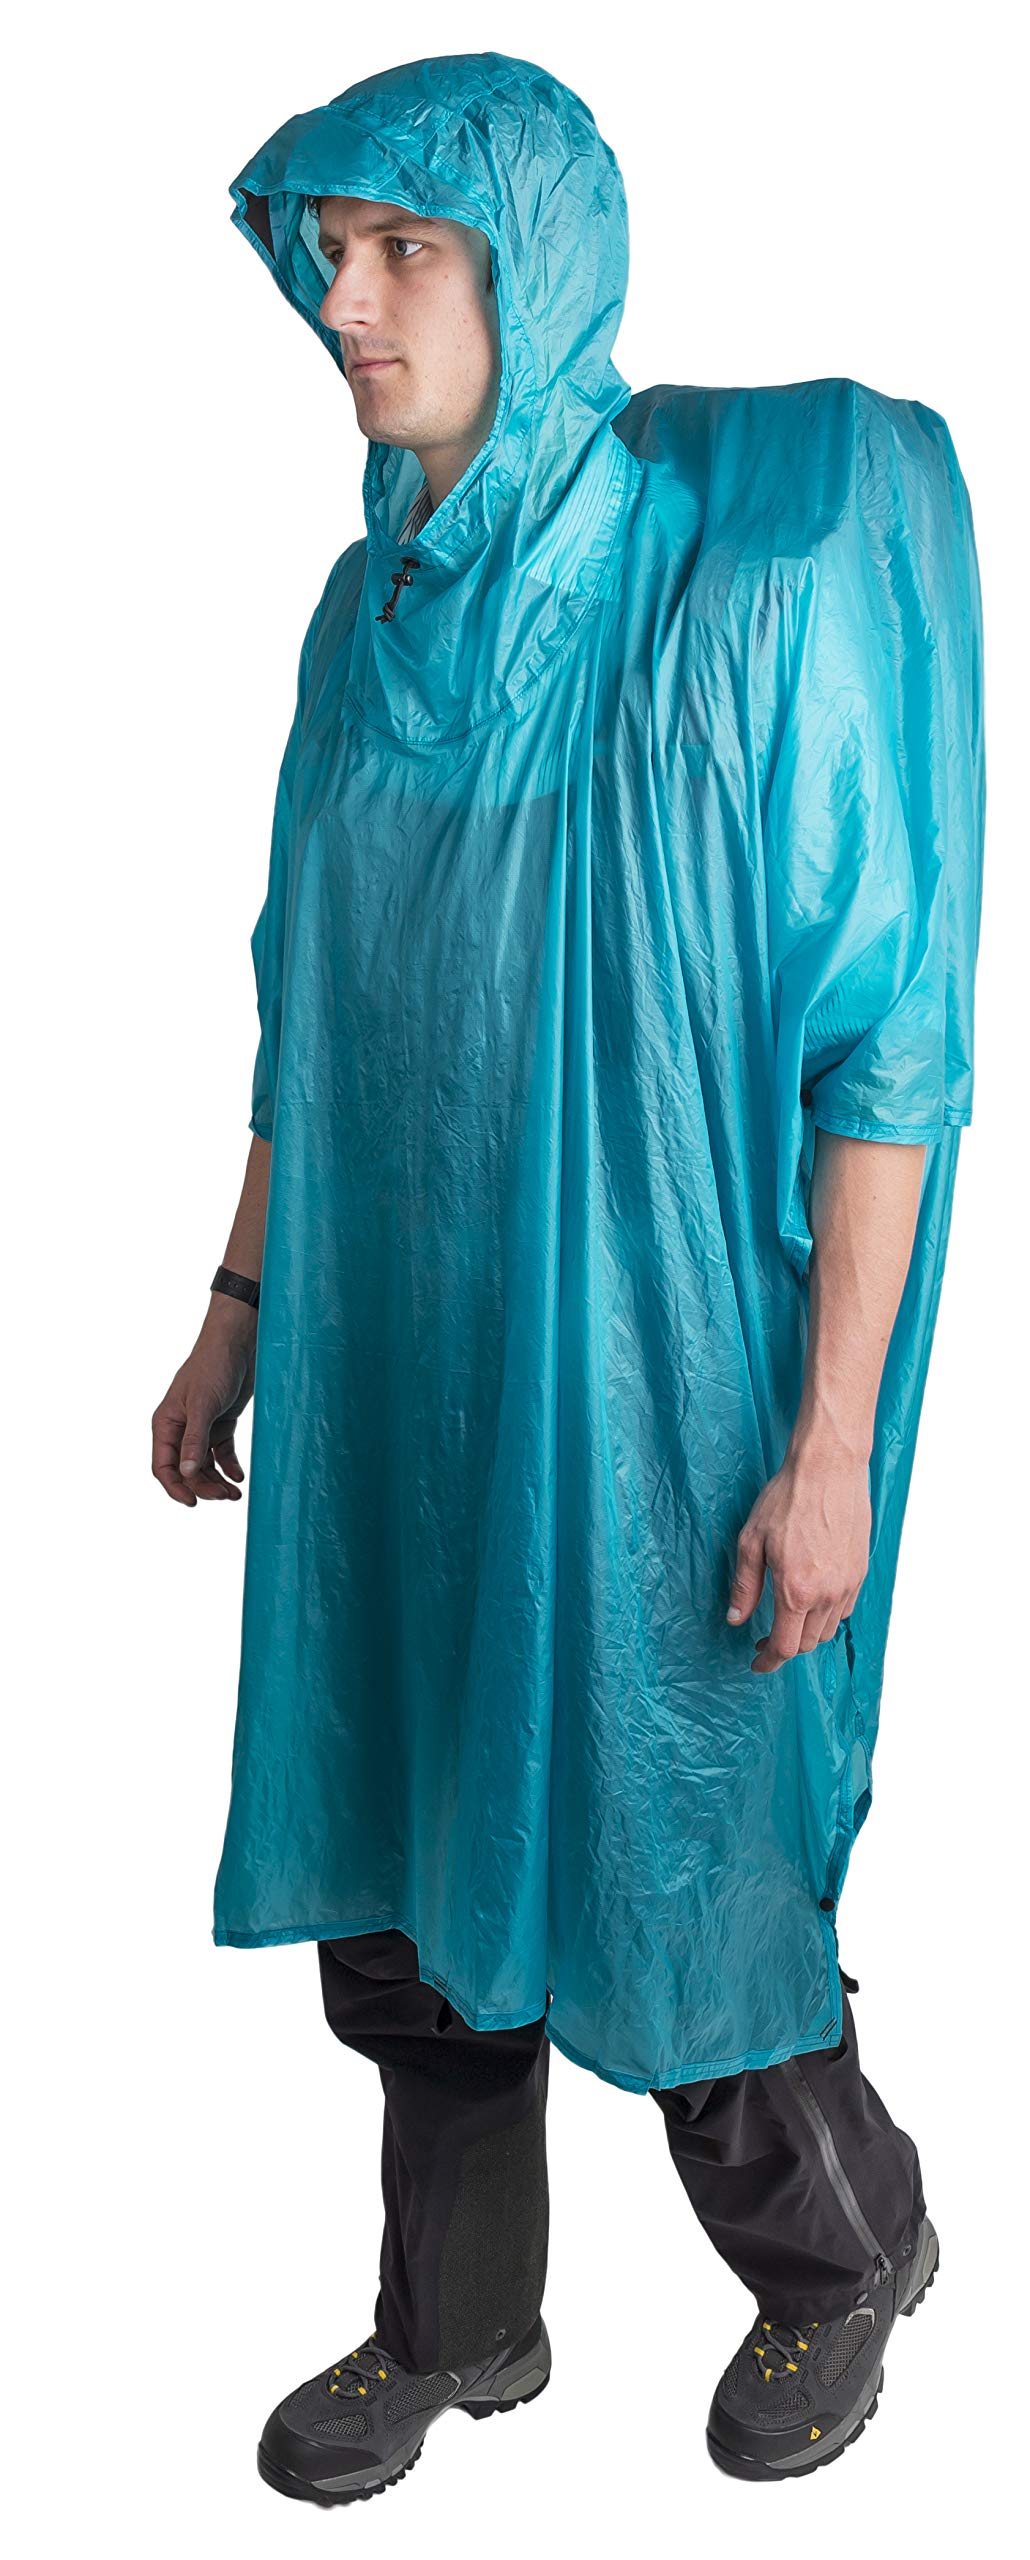 Sea to Summit Ultra-SIL NanoTarp-Poncho (Pacific Blue) by Sea to Summit